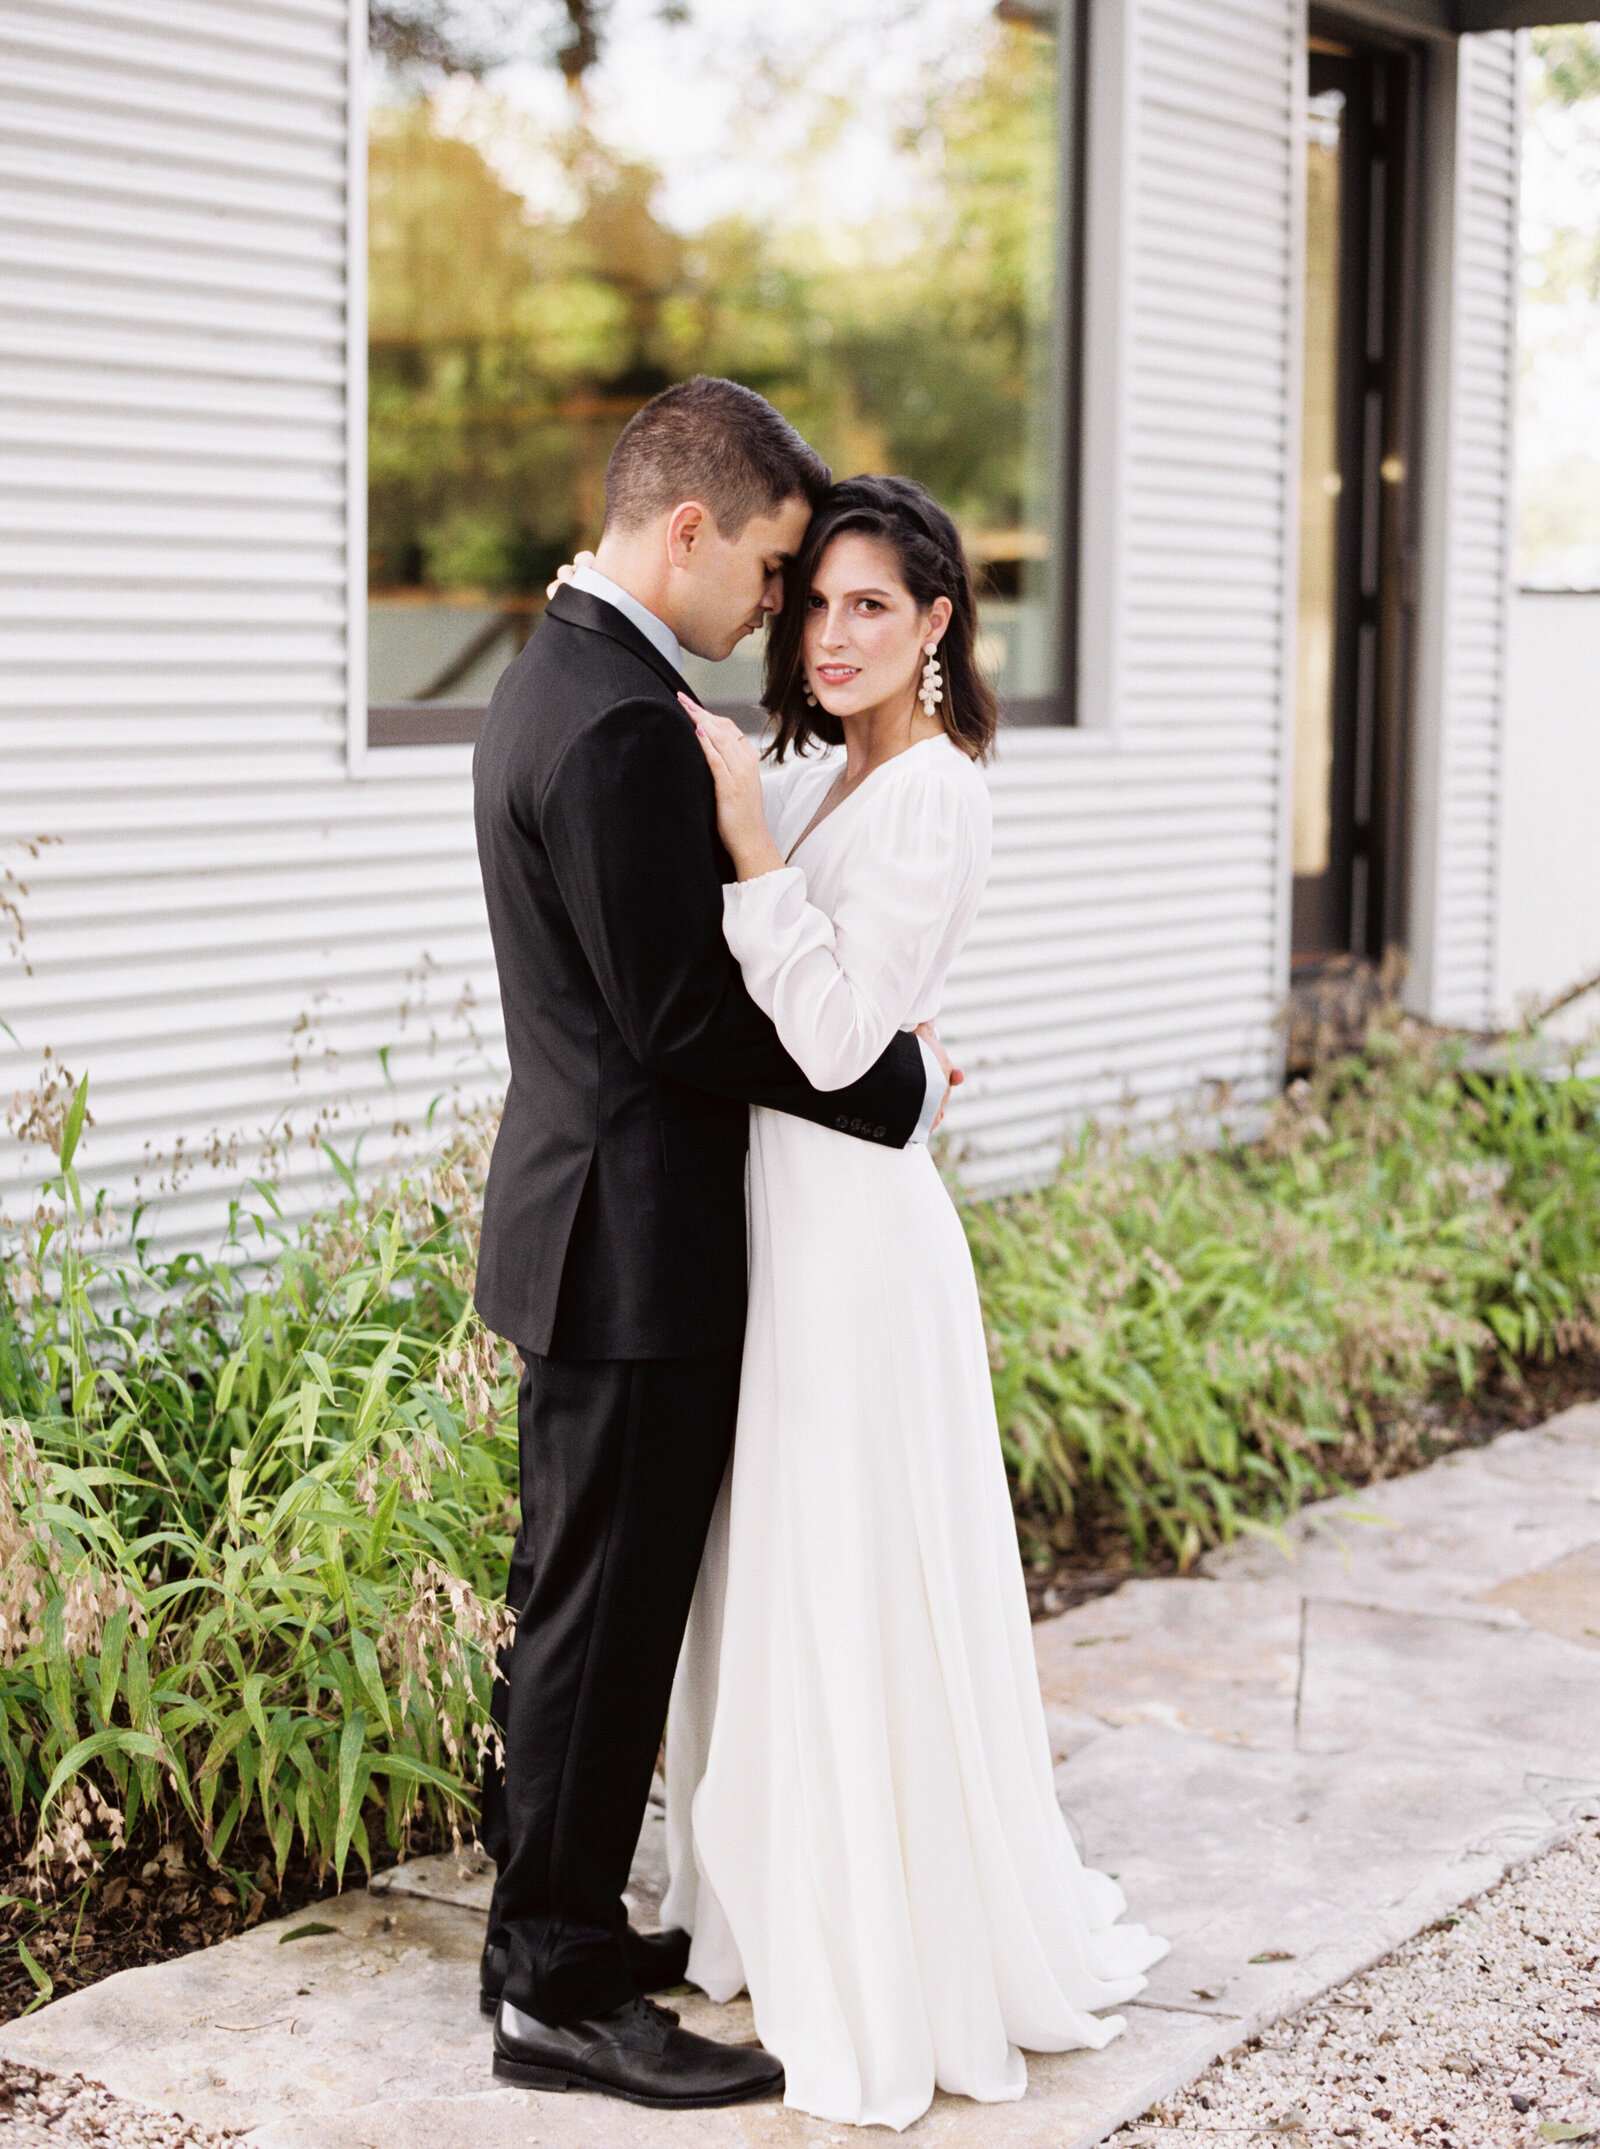 joshua aull photography dalals wedding photographer_0570